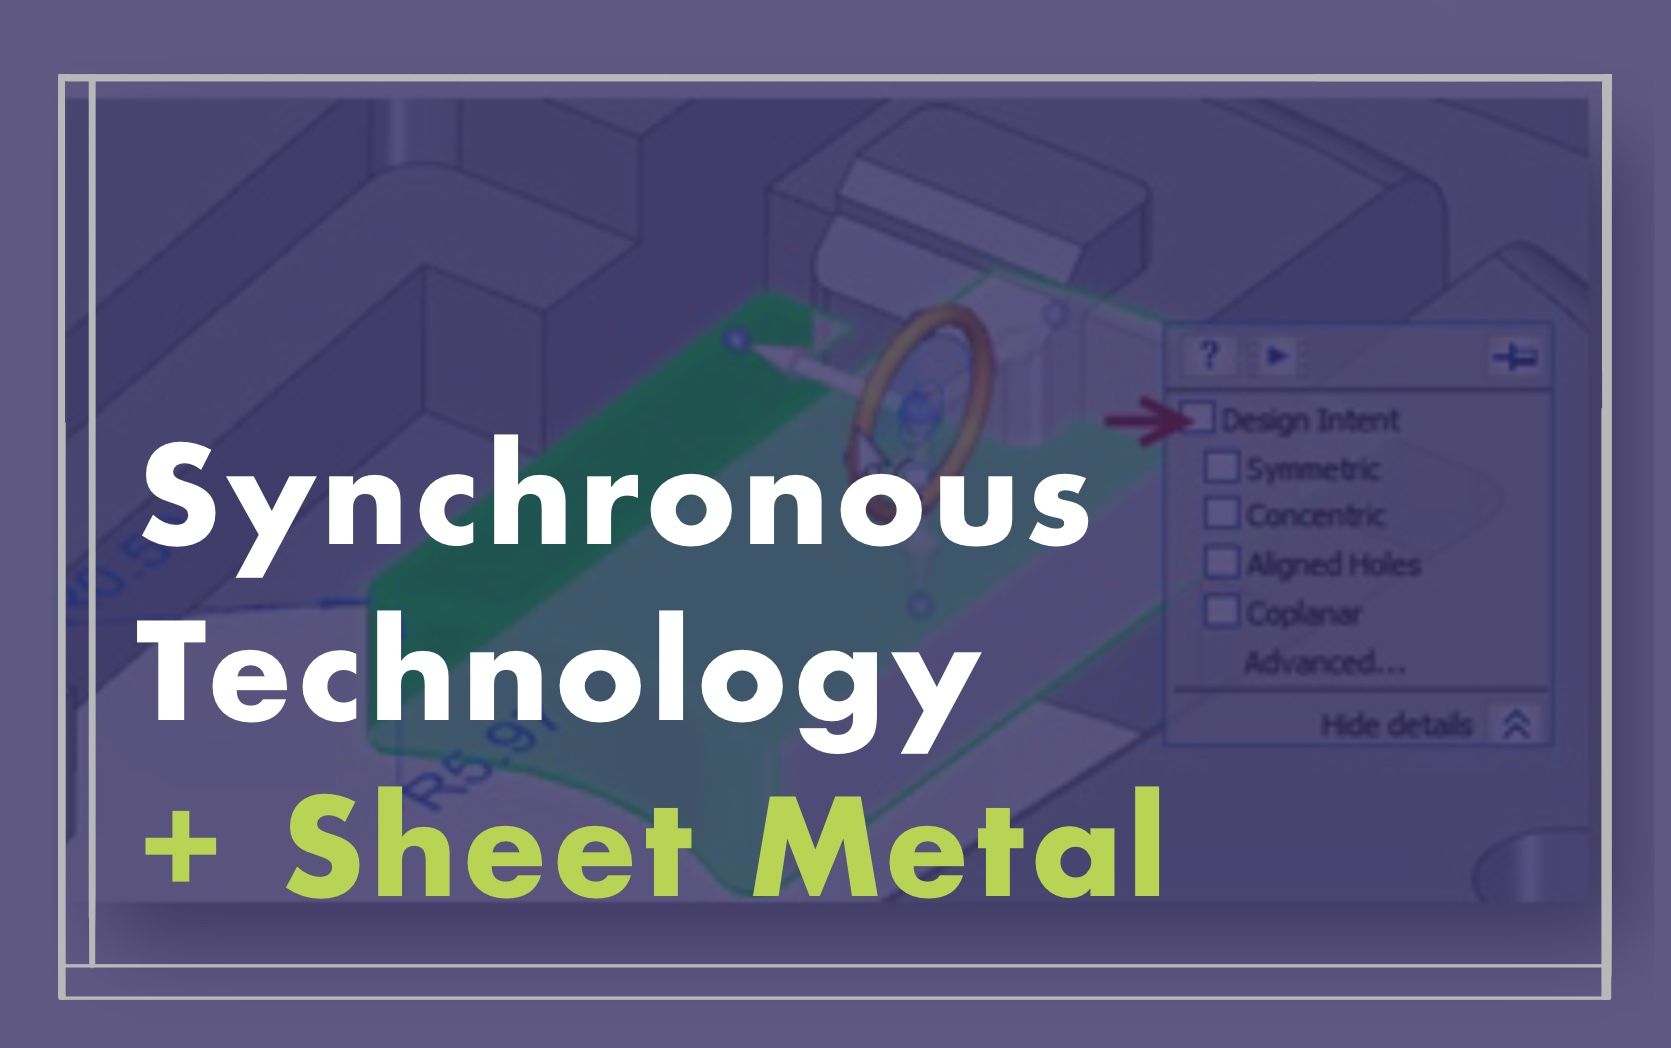 Synchronous Technology with Sheet Metal course image